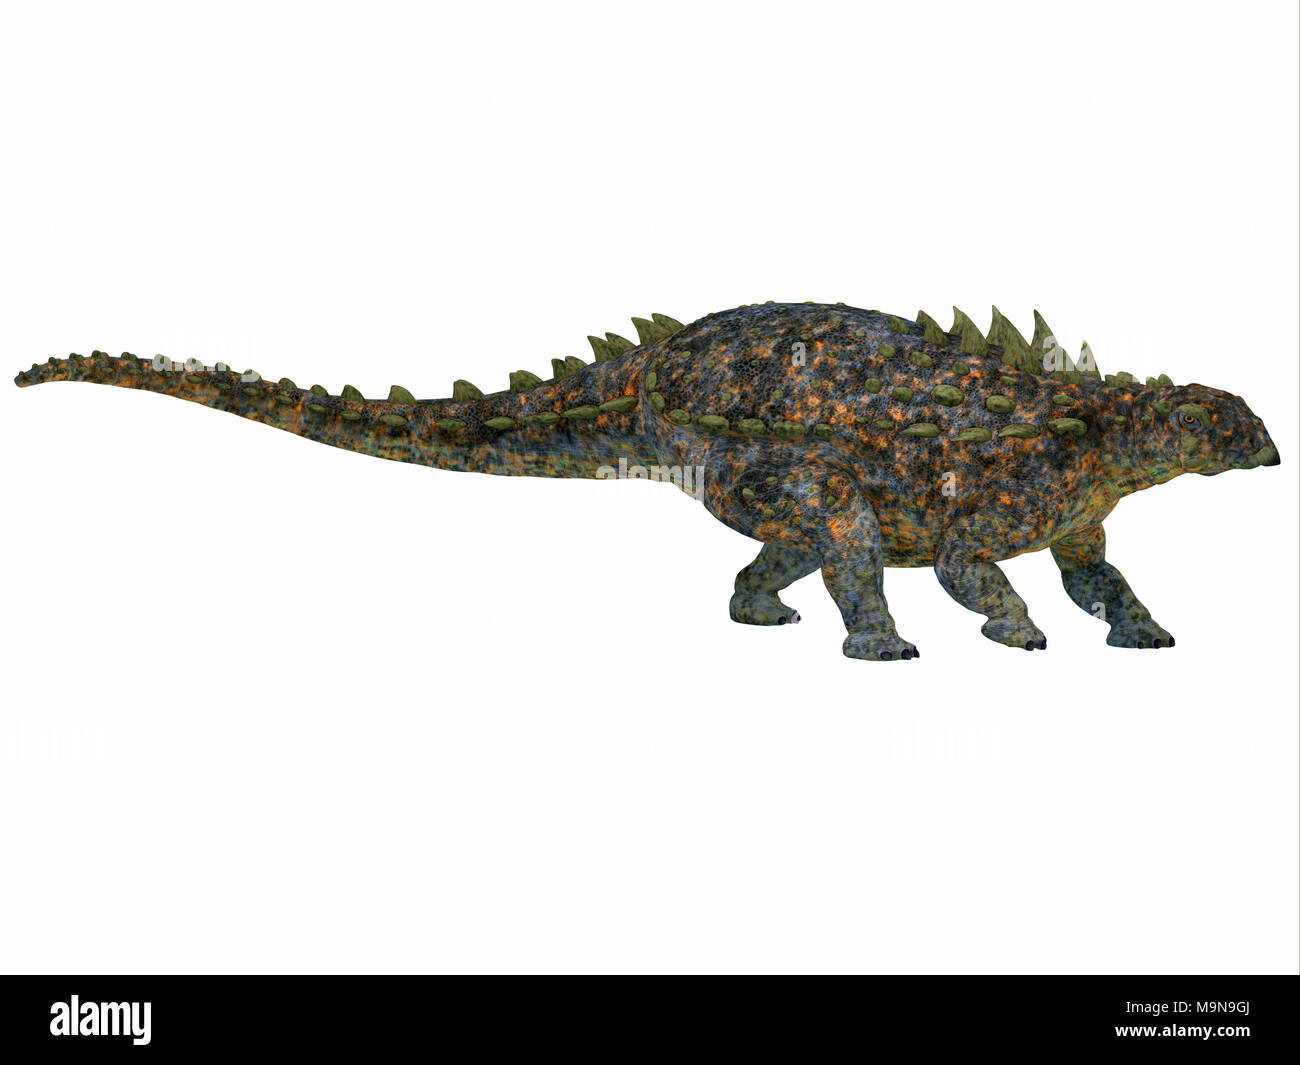 Polacanthus Dinosaur Side Profile - Polacanthus was an armored herbivorous dinosaur that lived in Europe during the Cretaceous Period. - Stock Image